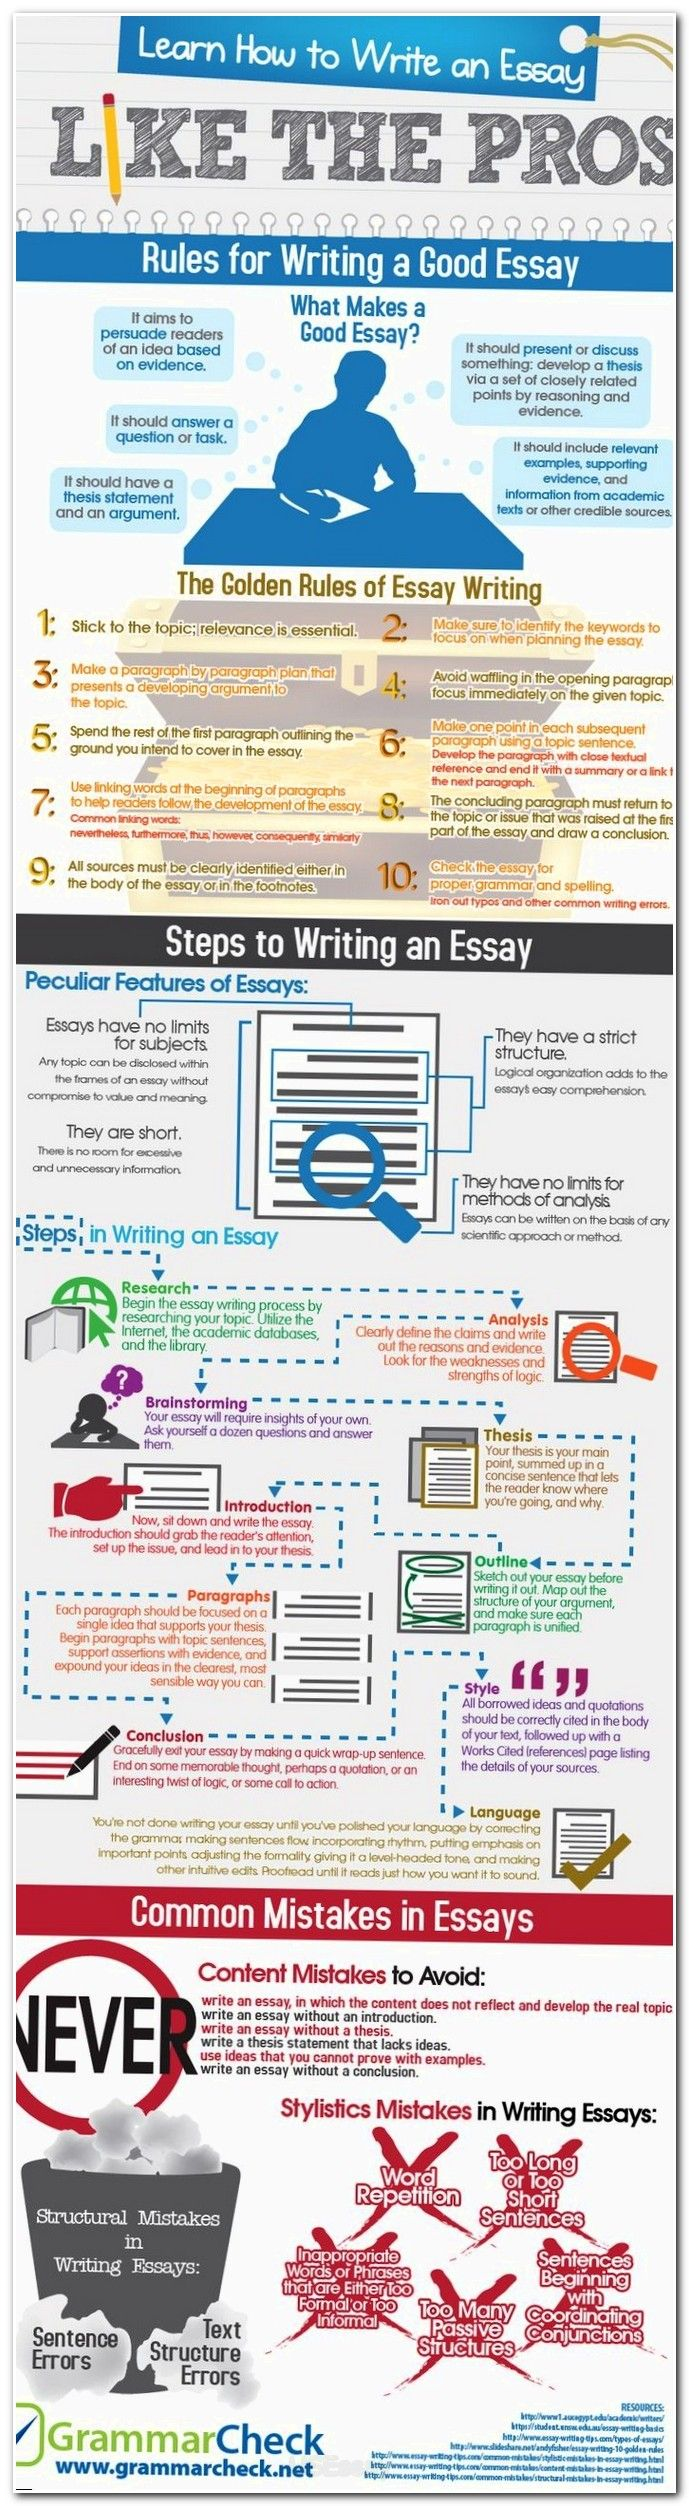 005 essay wrightessay music important in our life, sample